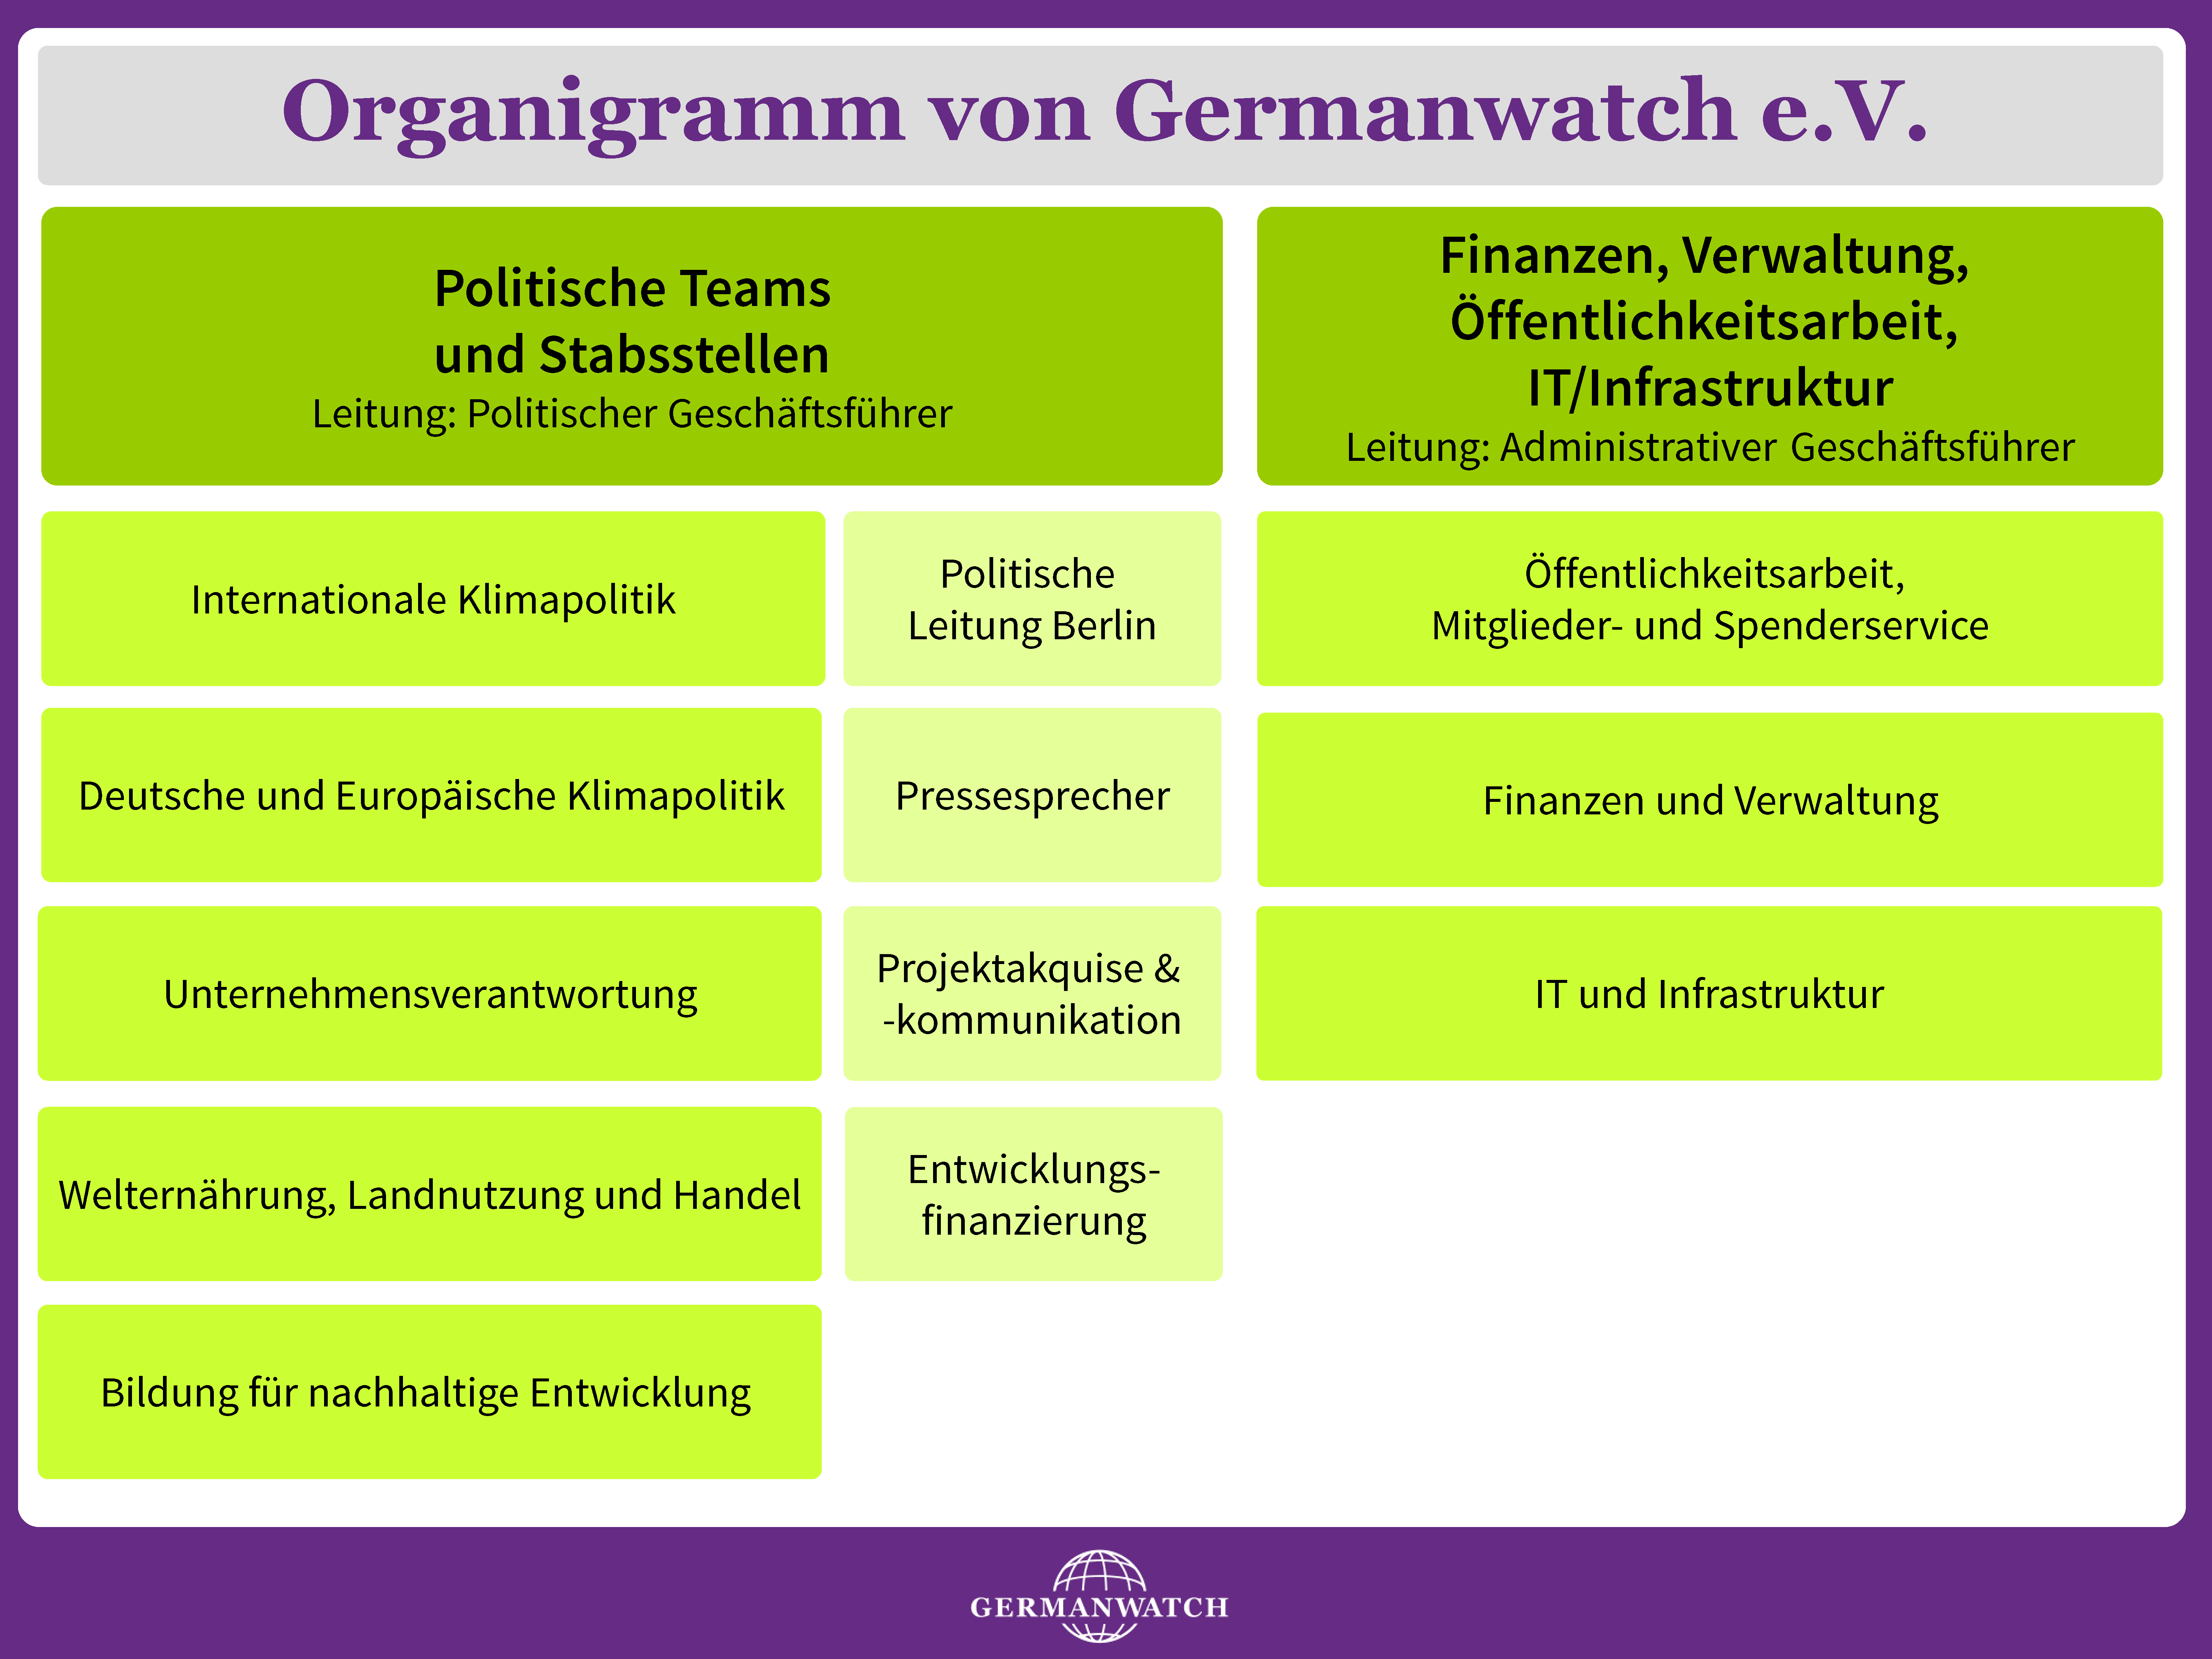 Organigramm von Germanwatch